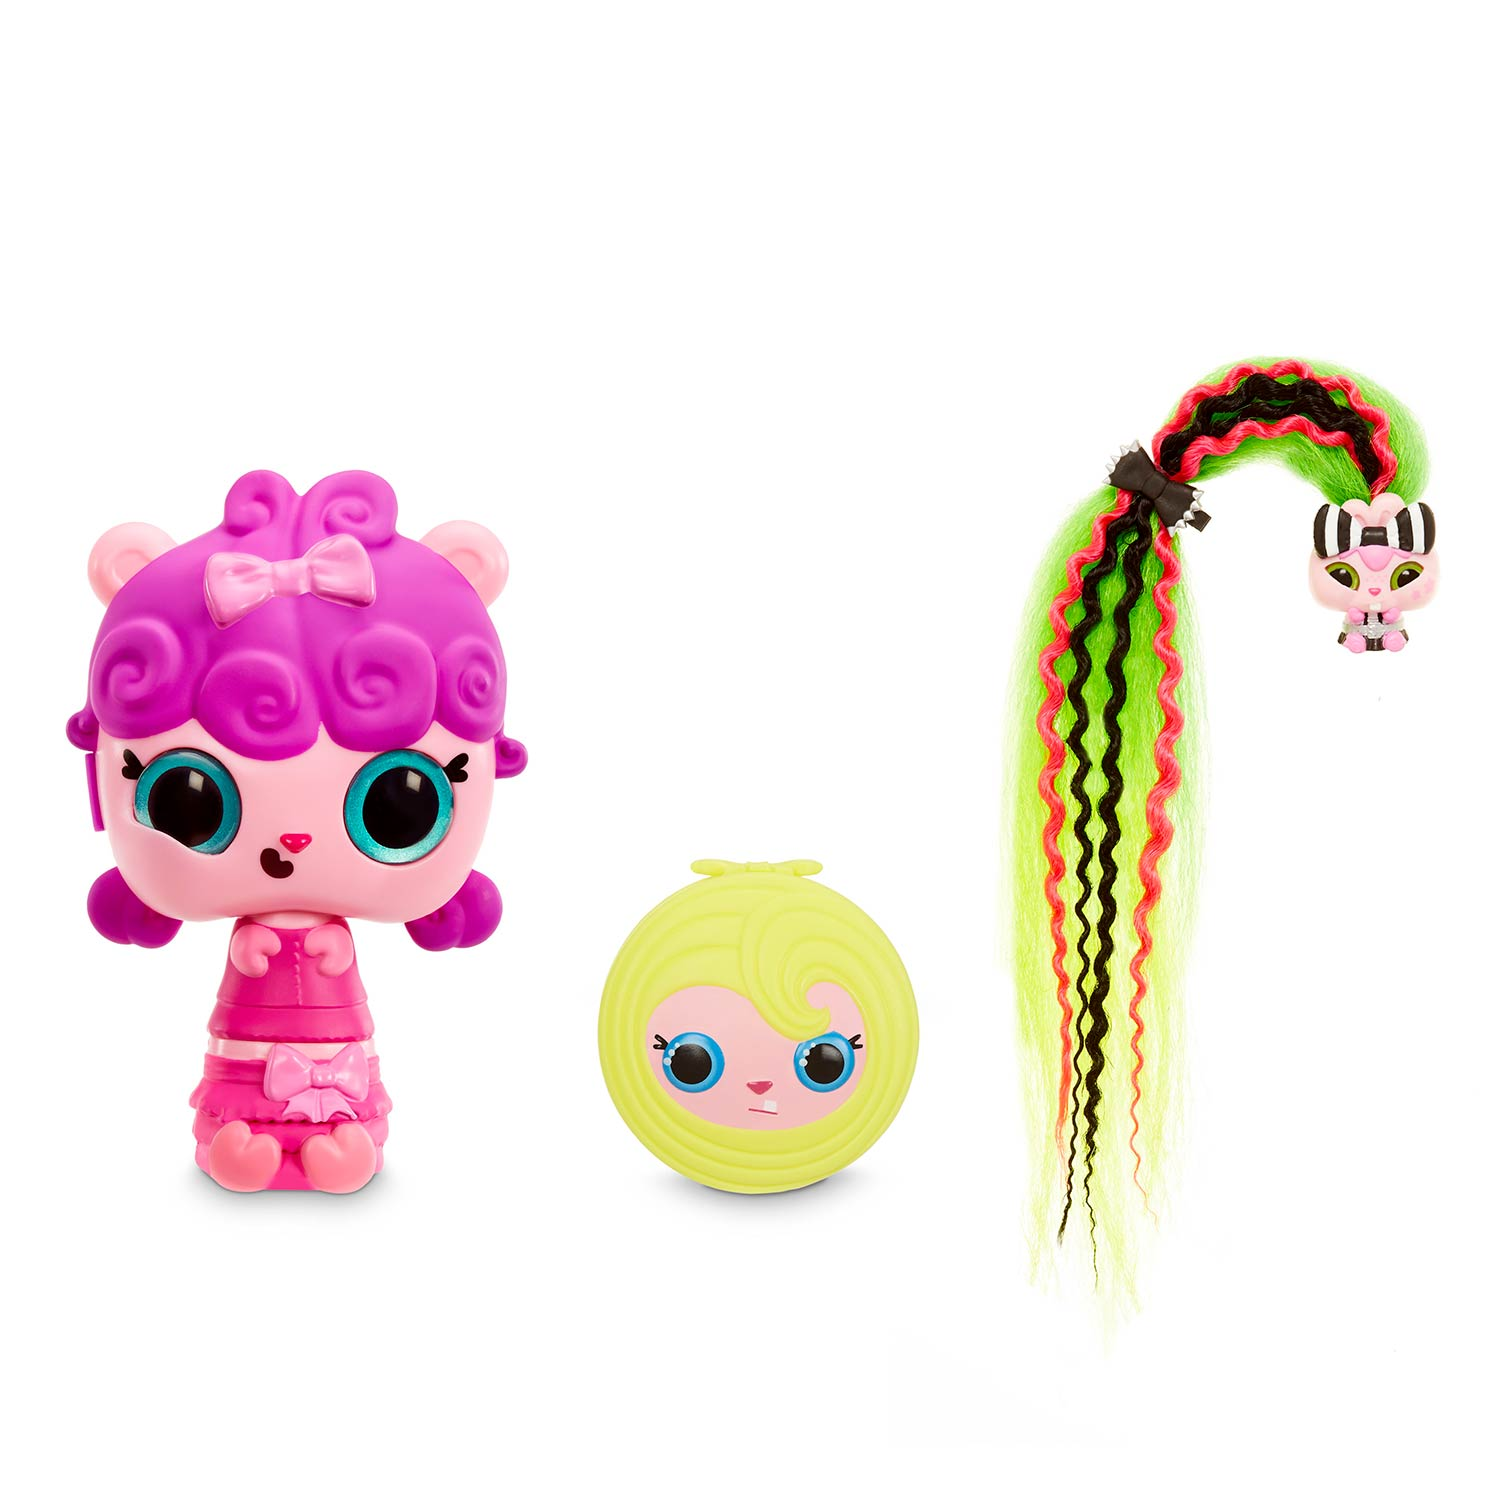 Pop Pop Hair Surprise 3in1